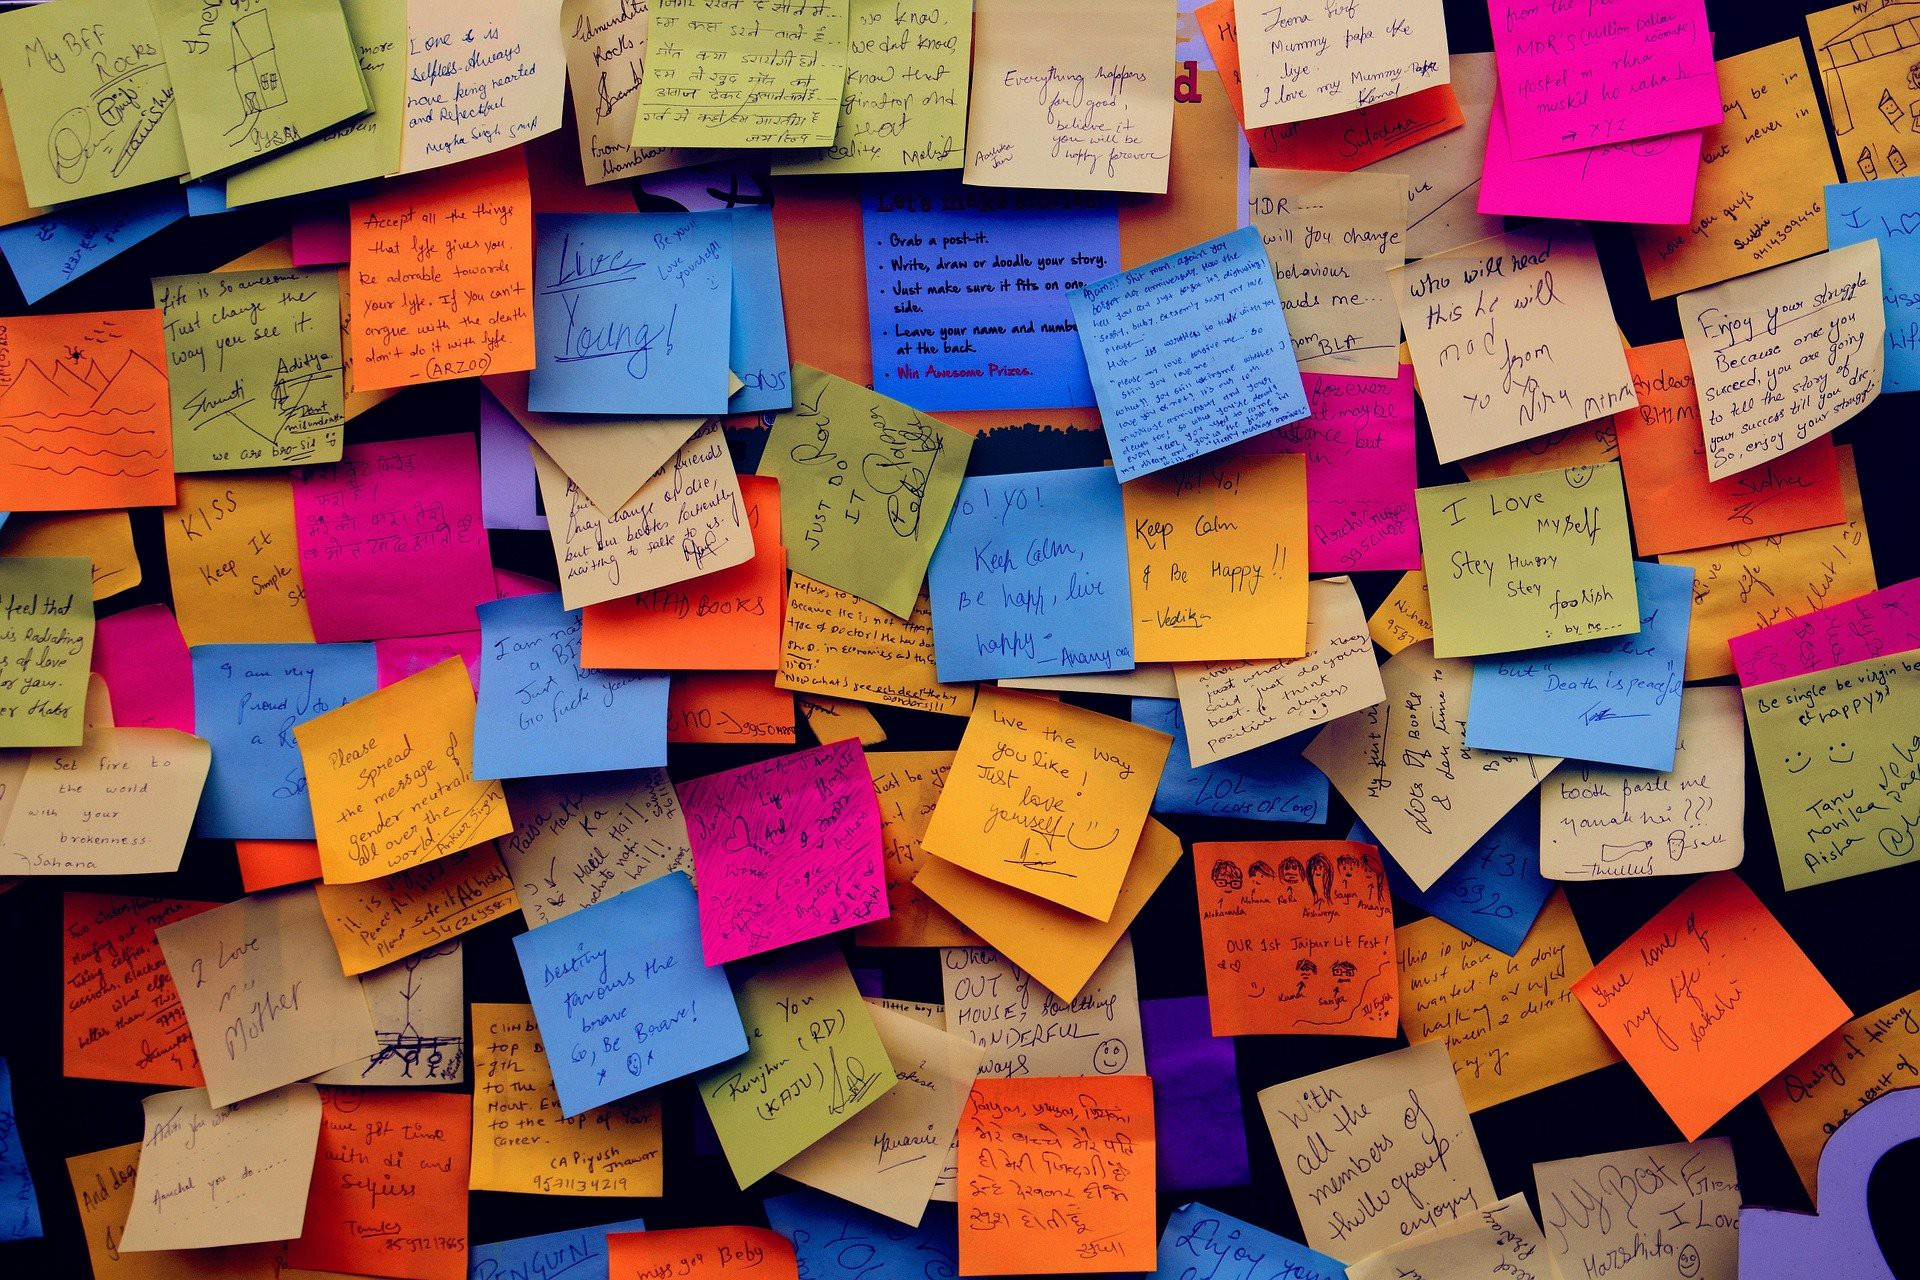 A haphazard collection of post-it notes on a wall.